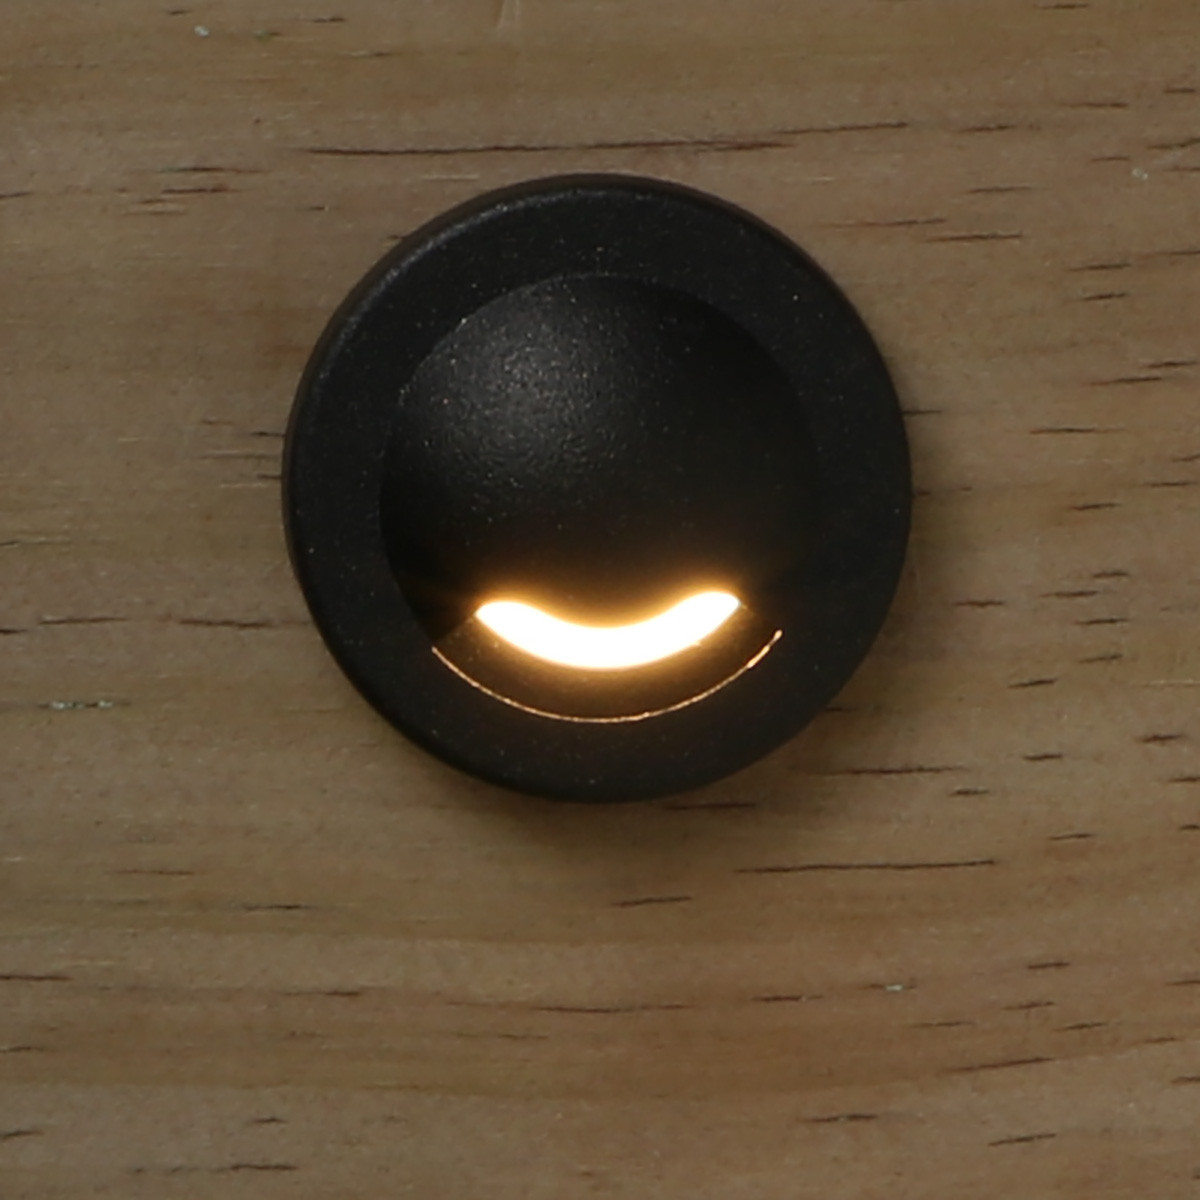 Round Recessed LED Stair Light with Cover by Dekor - Oil Rubbed Bronze - Installed - Light On